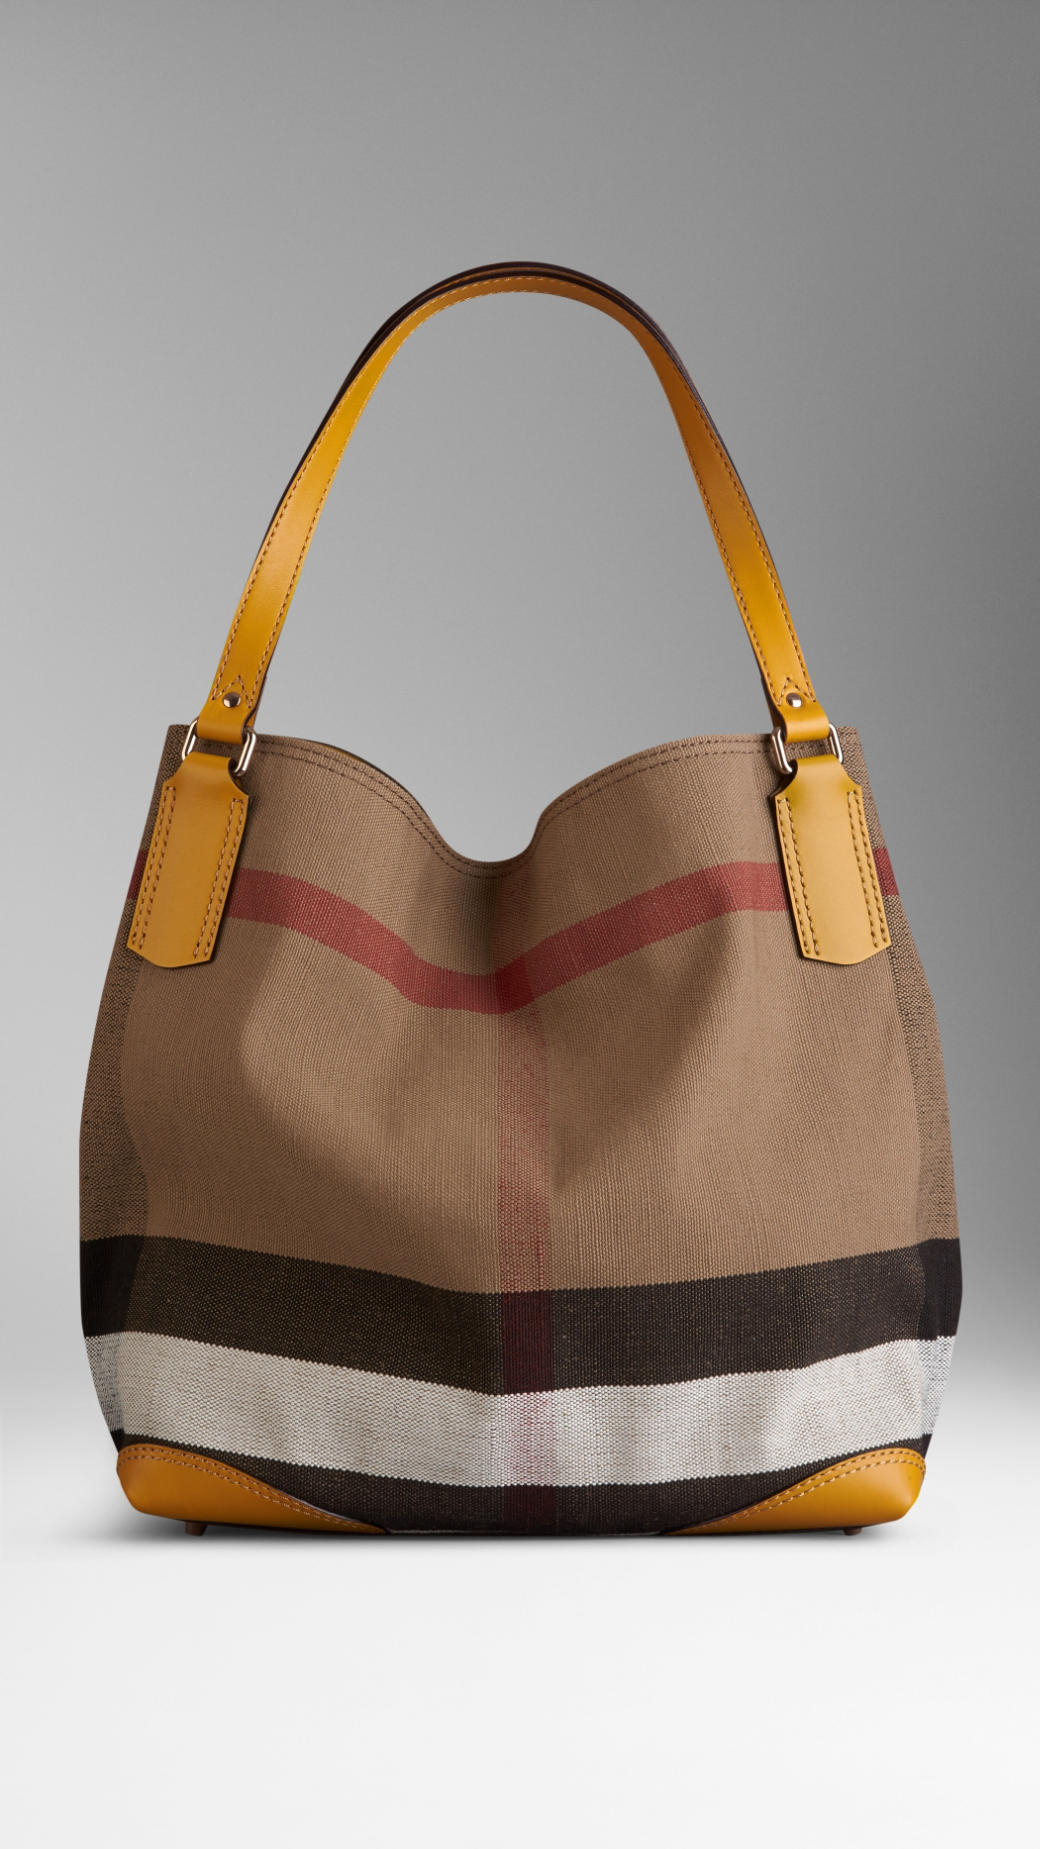 5b6ef6d189f7 Lyst - Burberry Medium Canvas Check Tote Bag in Yellow